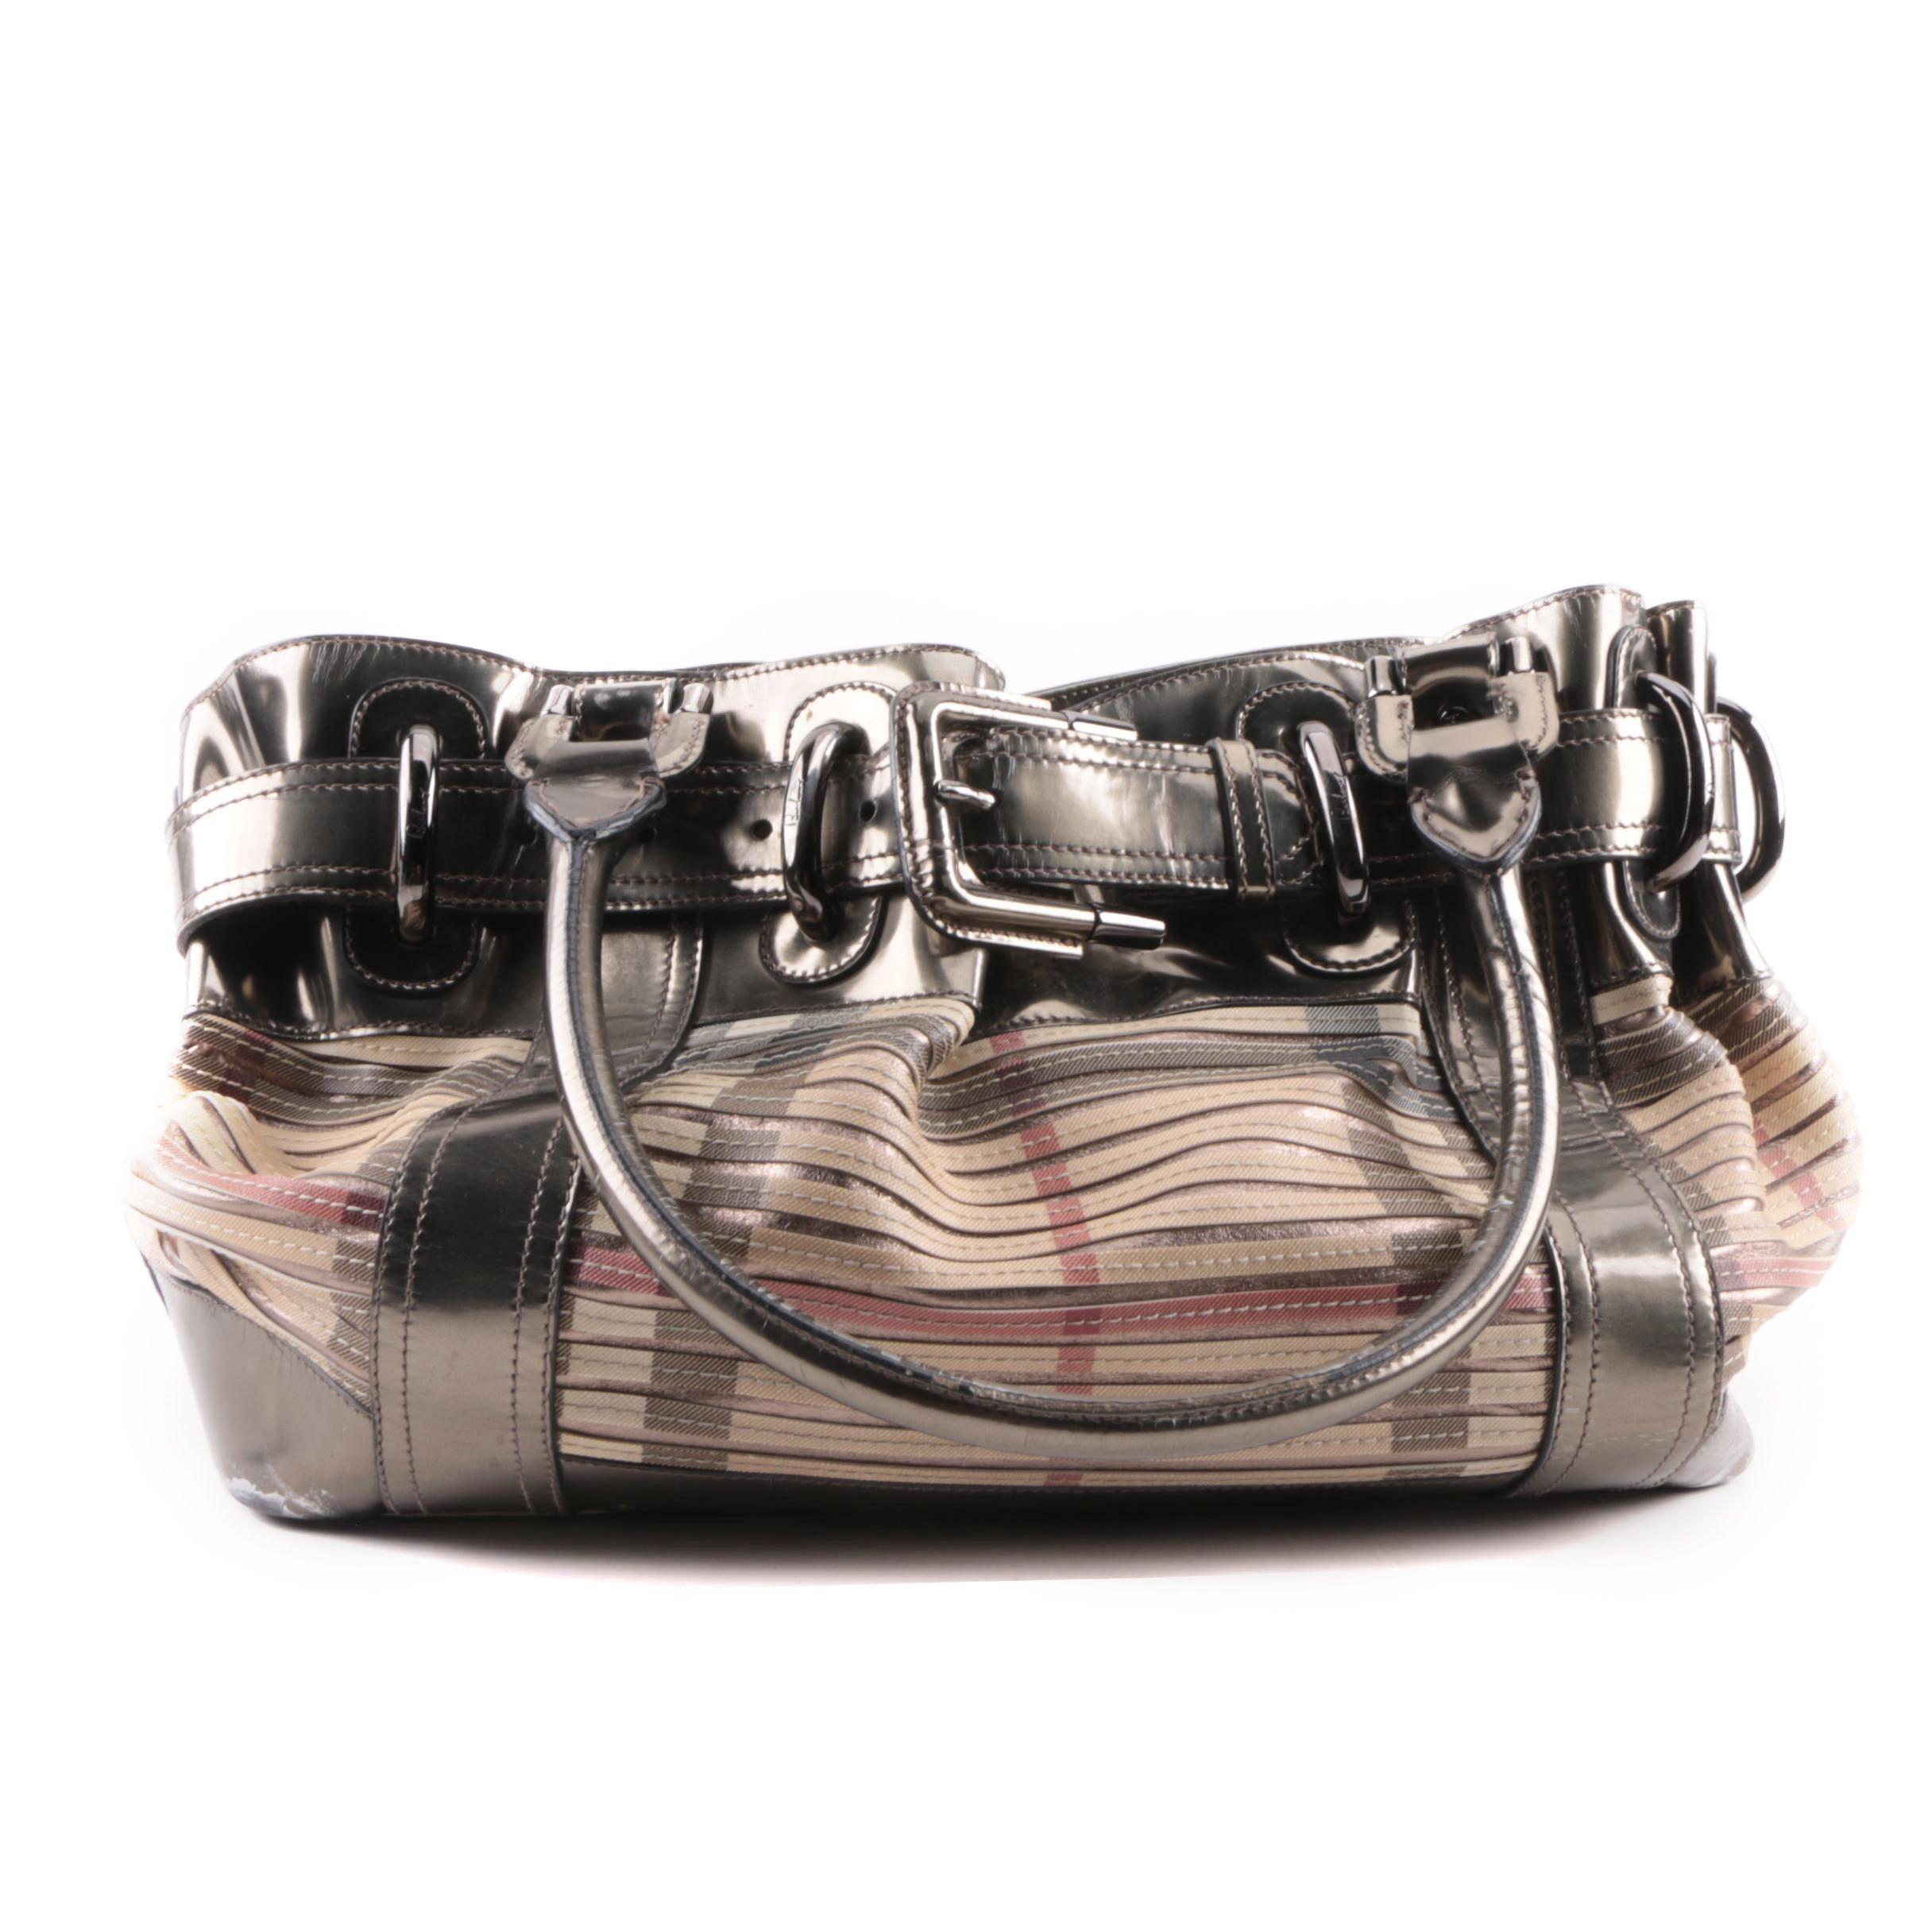 Burberry Silver Metallic Leather and Striped Coated Canvas Satchel